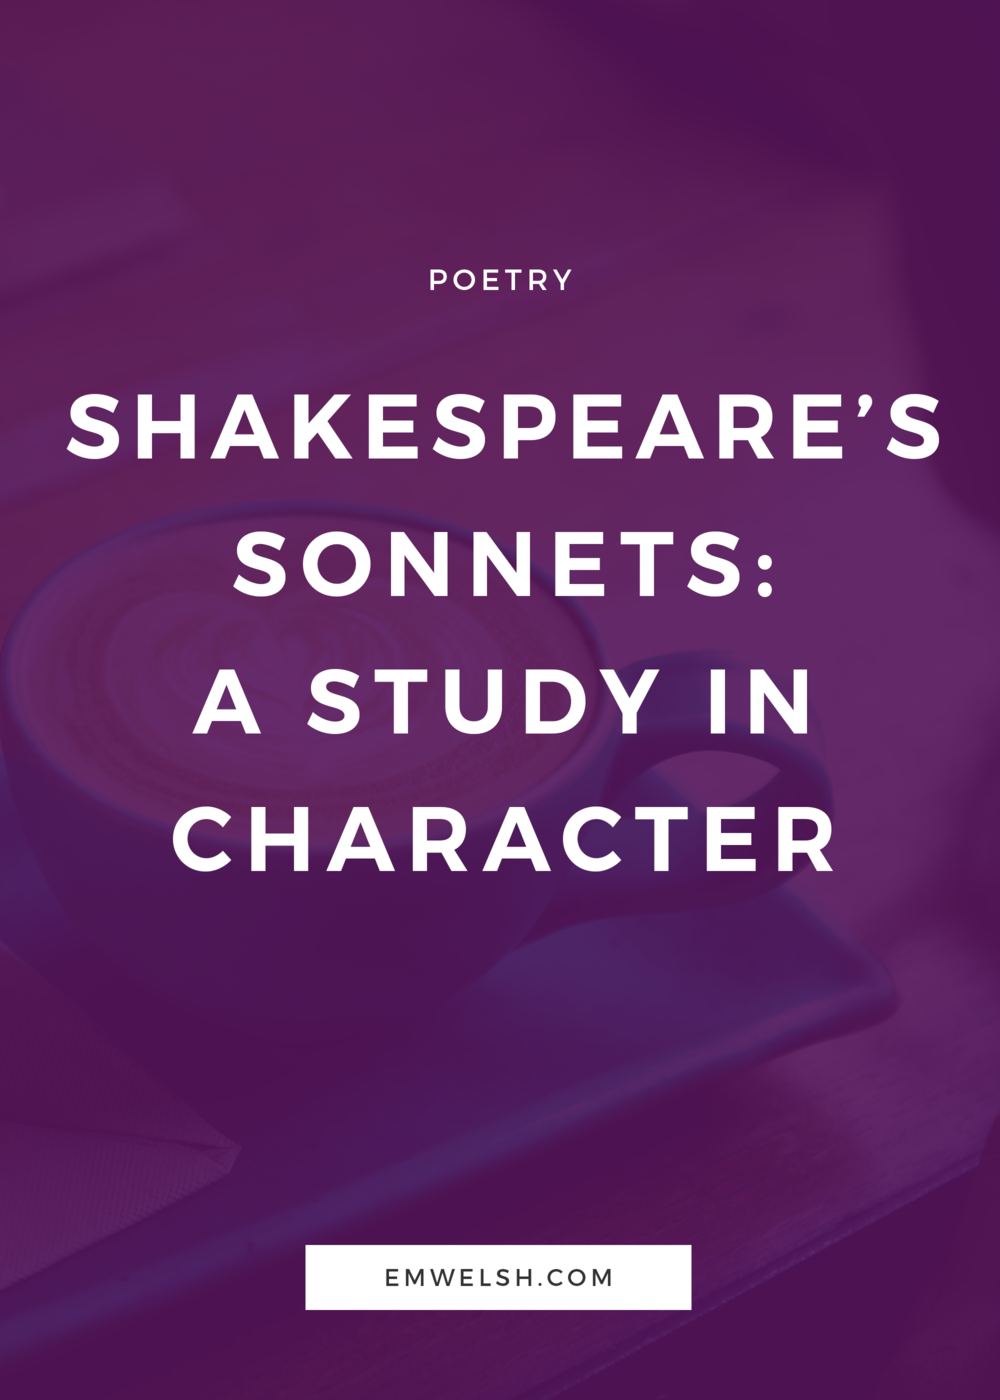 a study of sonnet Answer to: what is the meaning of sonnet 116 by signing up, you'll get thousands of step-by-step solutions to your homework questions you can.